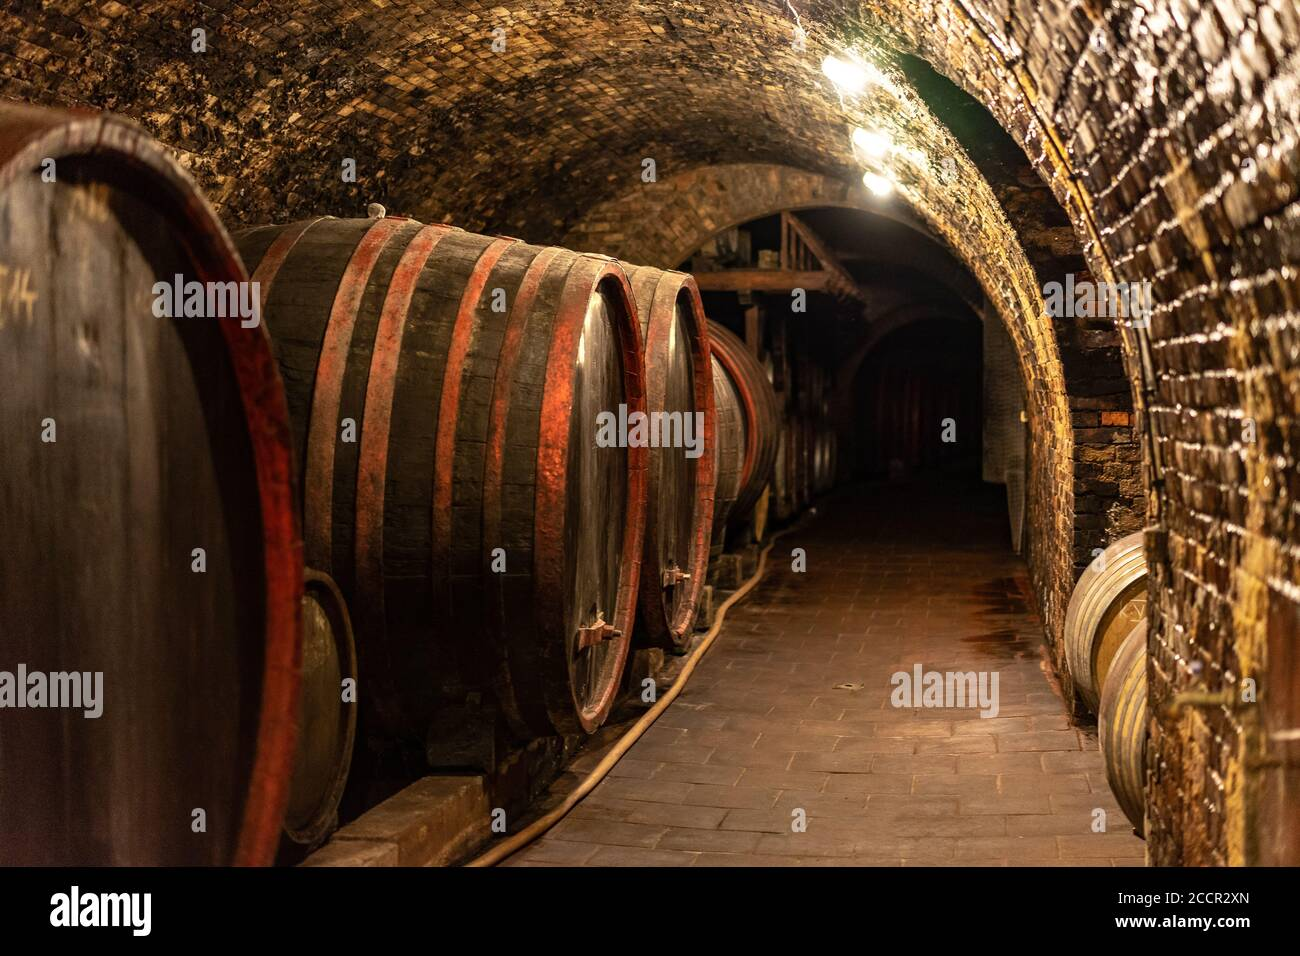 Wooden Old Barrels In The Rustic Wine Cellar With Brick Walls In Villany Hungary Stock Photo Alamy